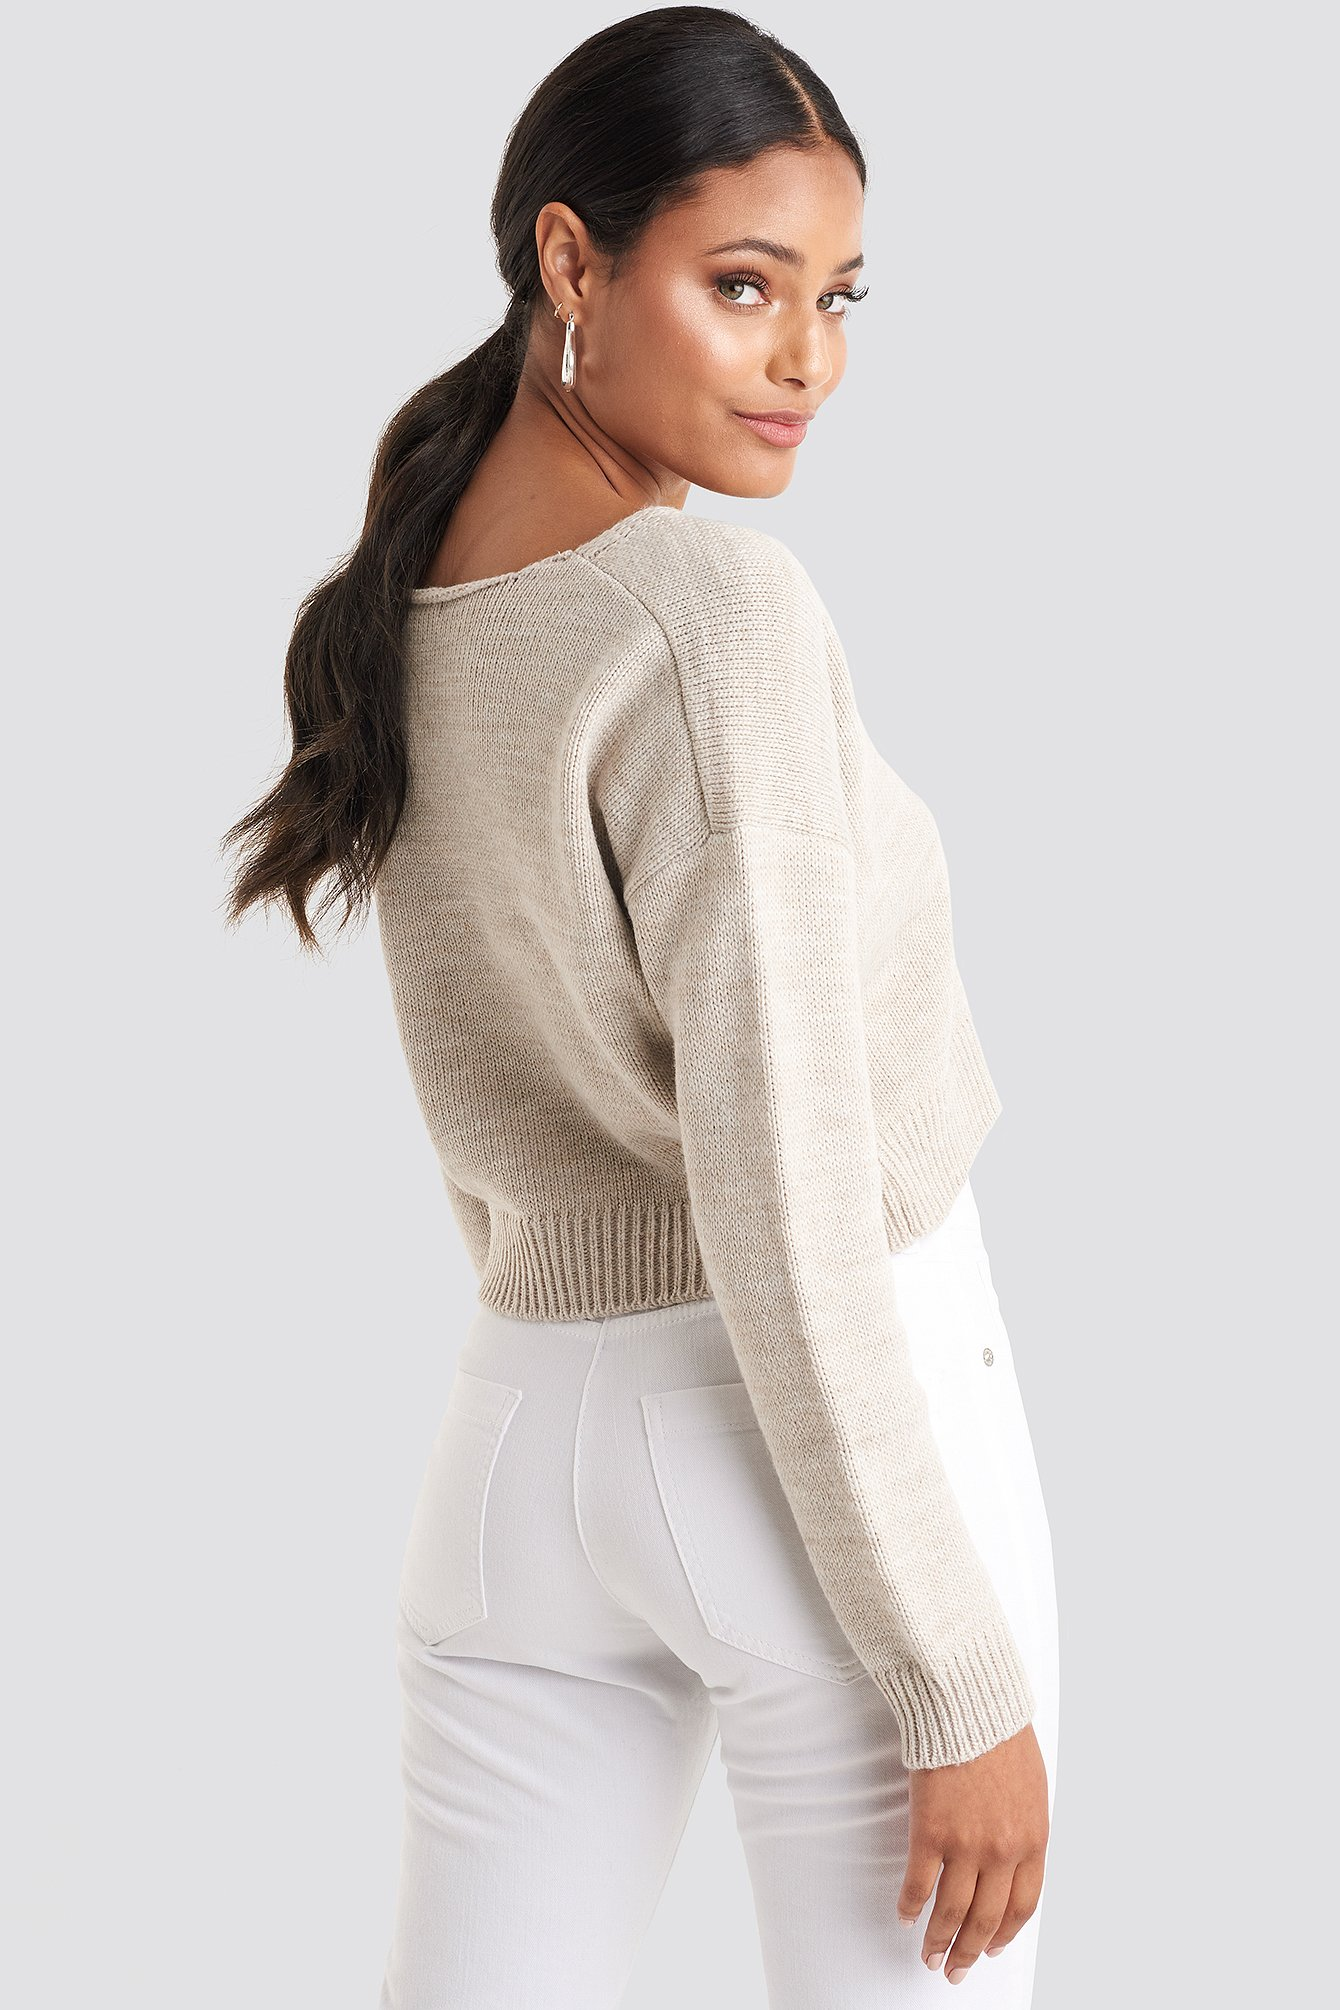 Beige Cropped V-neck Knitted Sweater